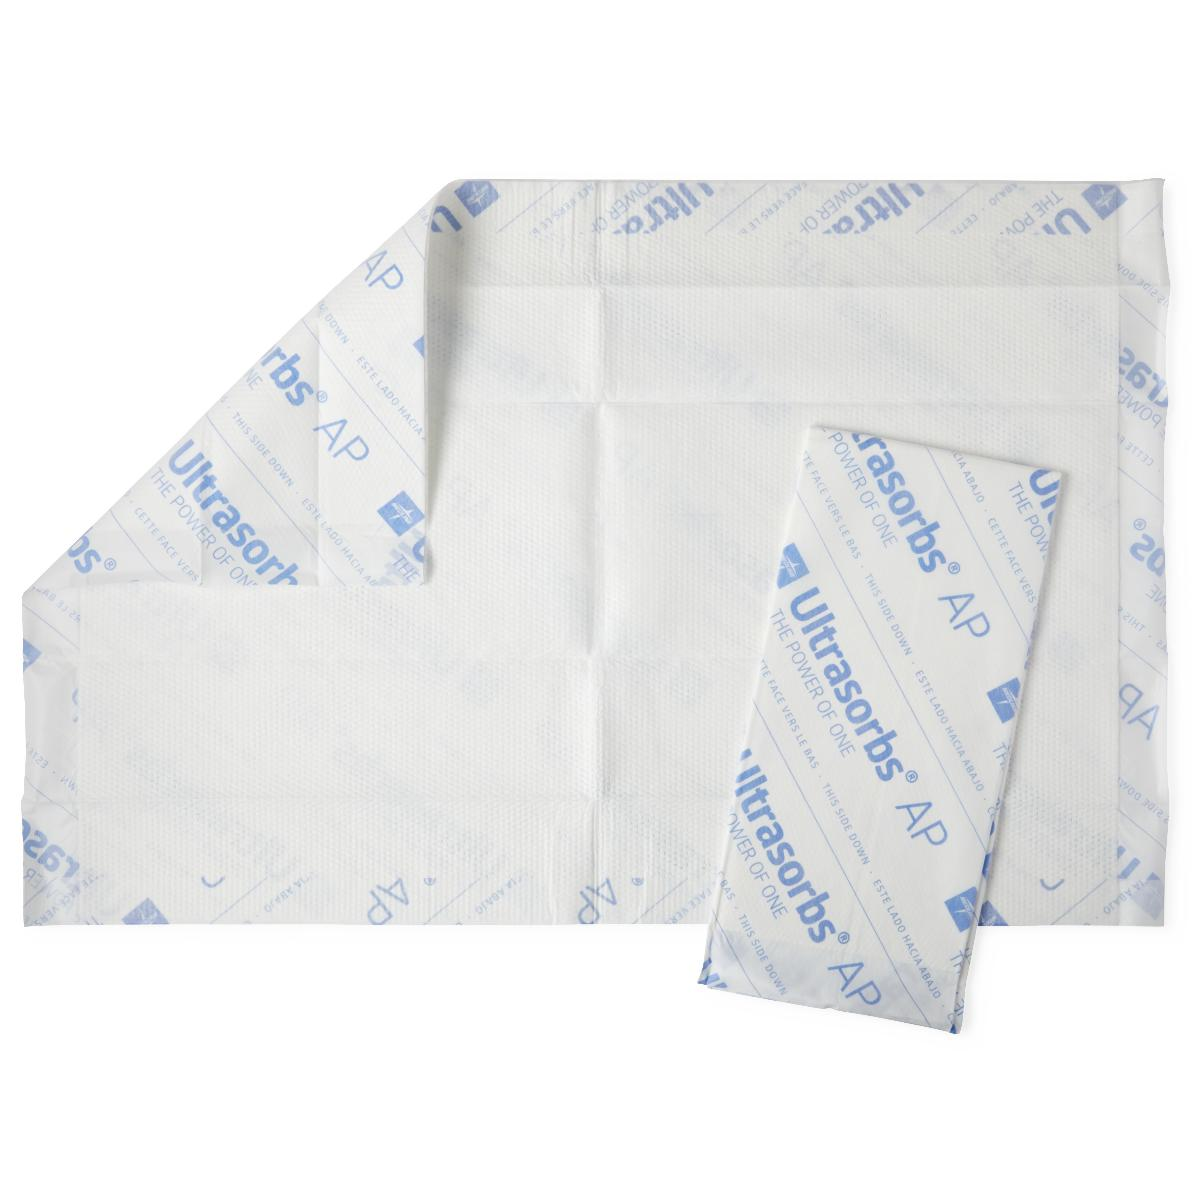 Ultrasorbs Air Permeable Drypad Underpads 18 x 24 - 60/Case